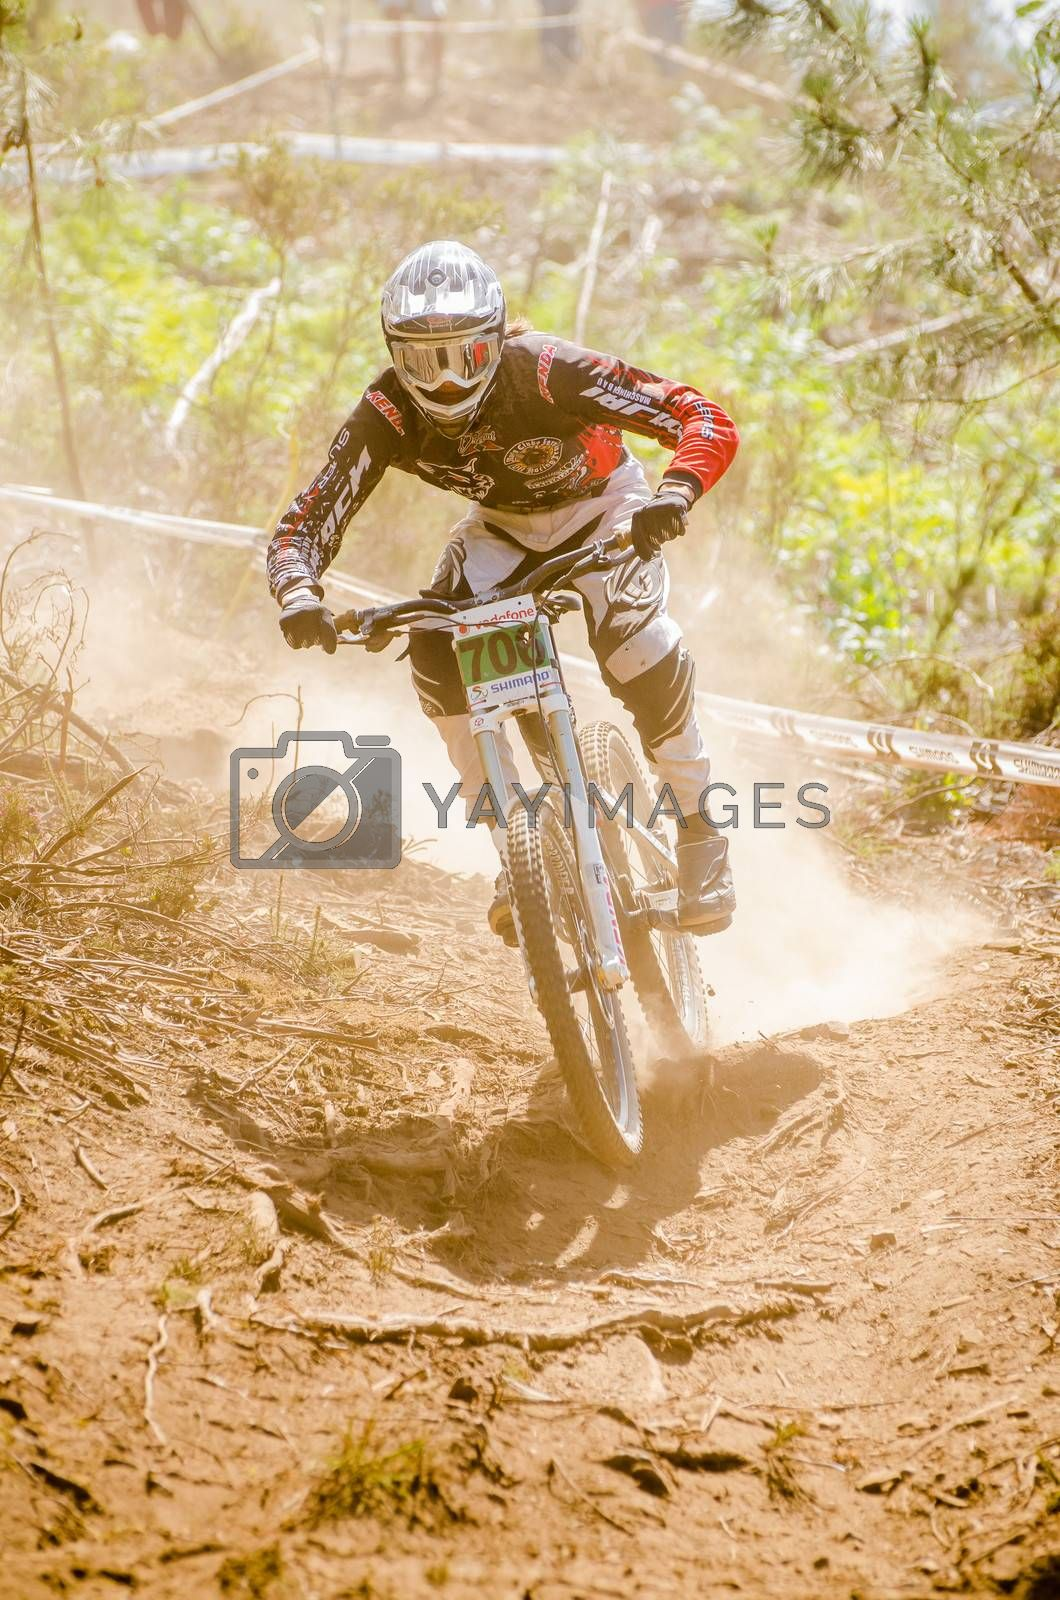 GOIS, PORTUGAL - JUNE 23: Silas Grandy during the 4th Stage of the Taca de Portugal Downhill Vodafone on june 23, 2013 in Gois, Portugal.